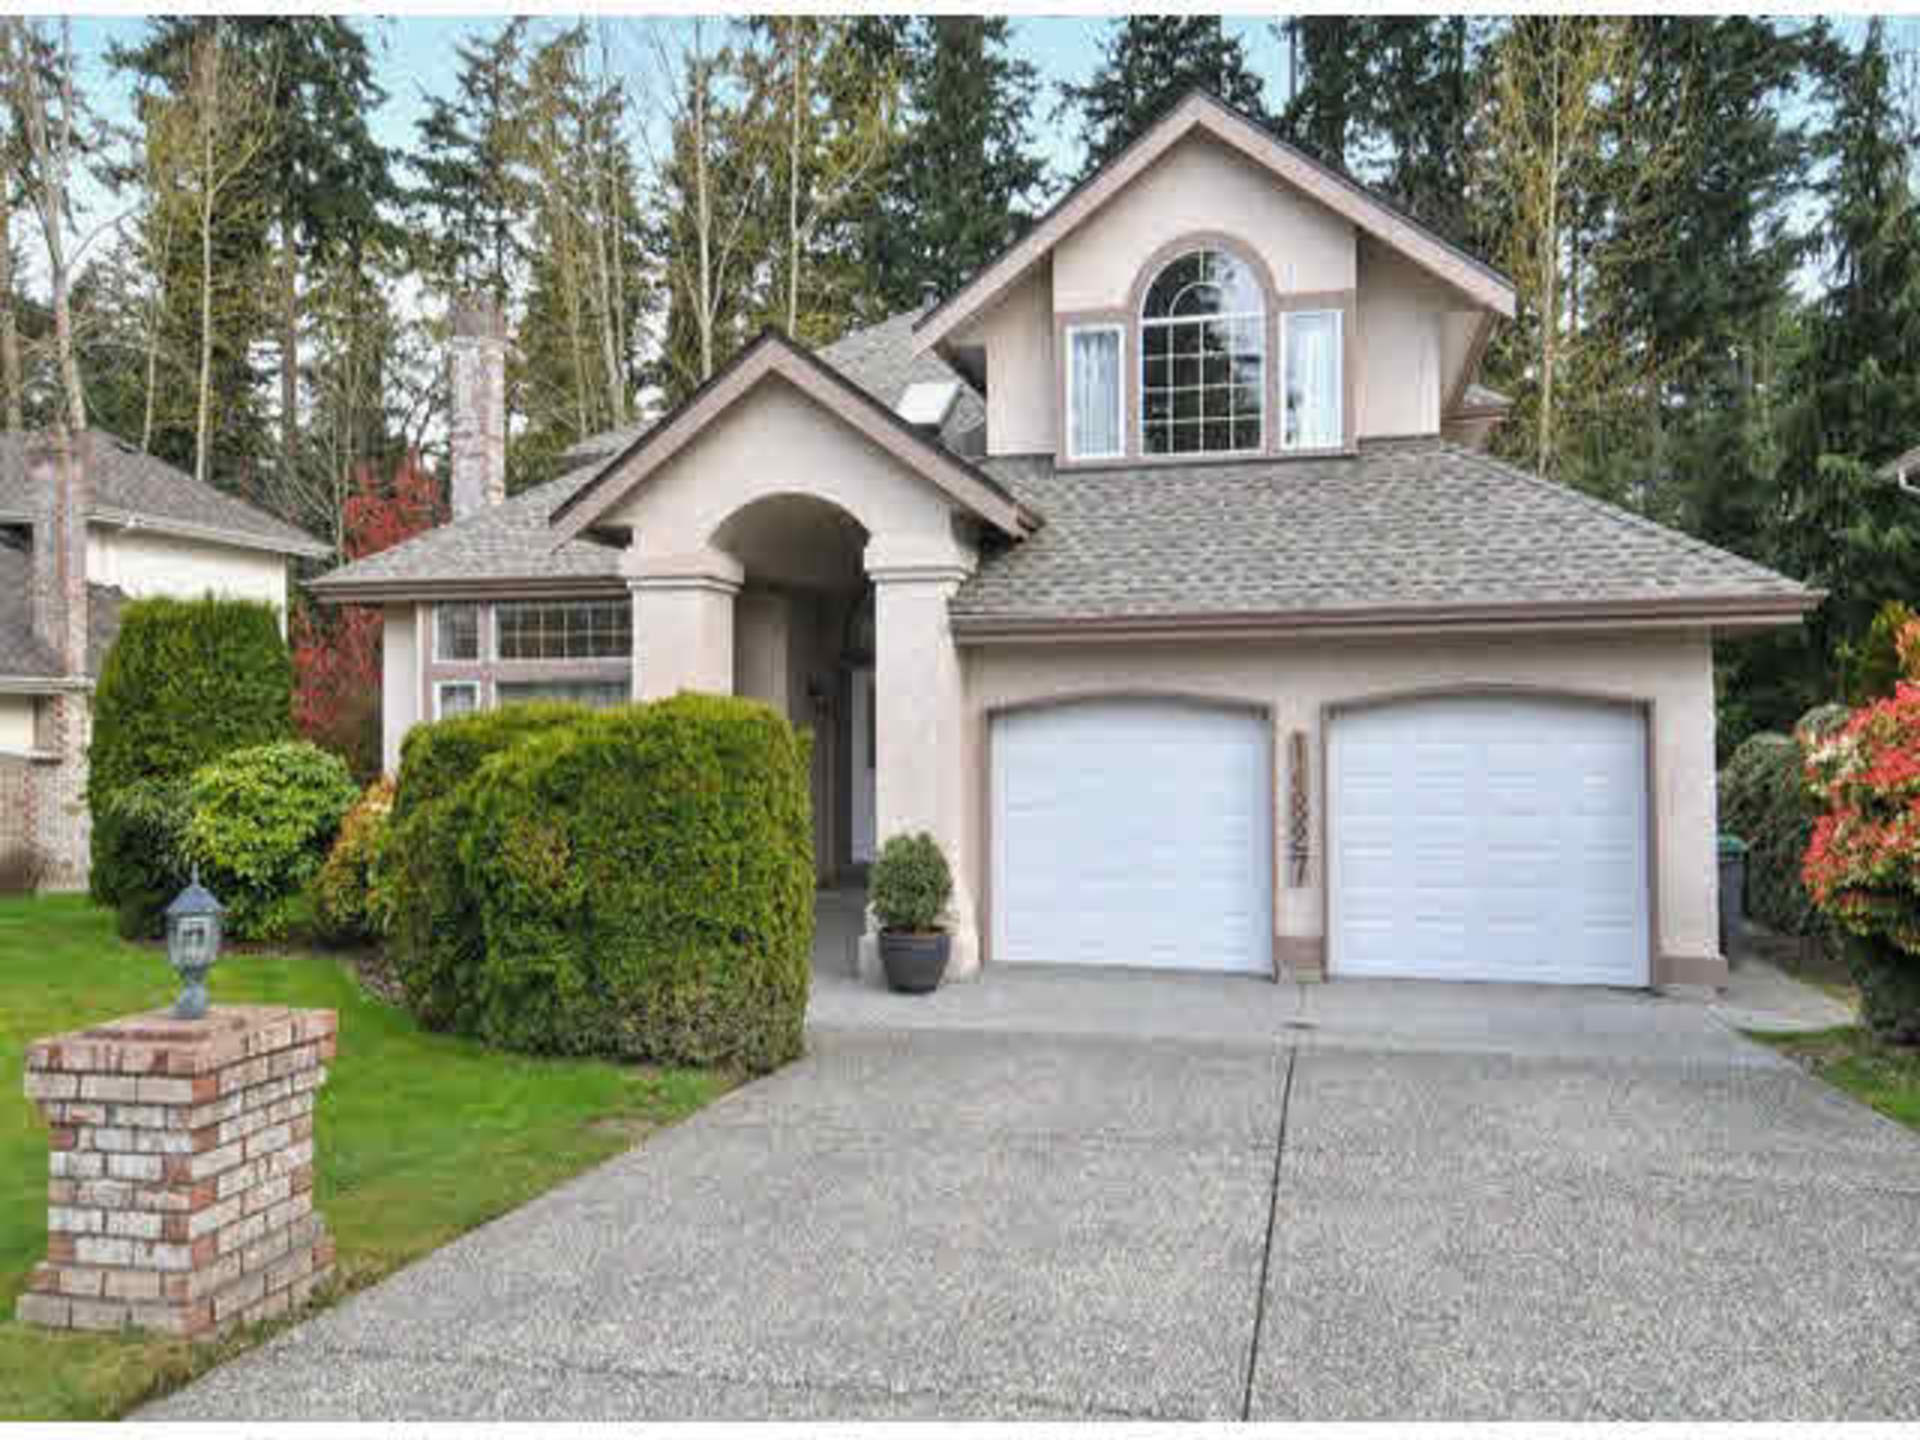 14827 26th avenue sunnyside park surrey south surrey white rock 260910845 at 14827 26th avenue sunnyside park surrey south surrey white rock rubansaba